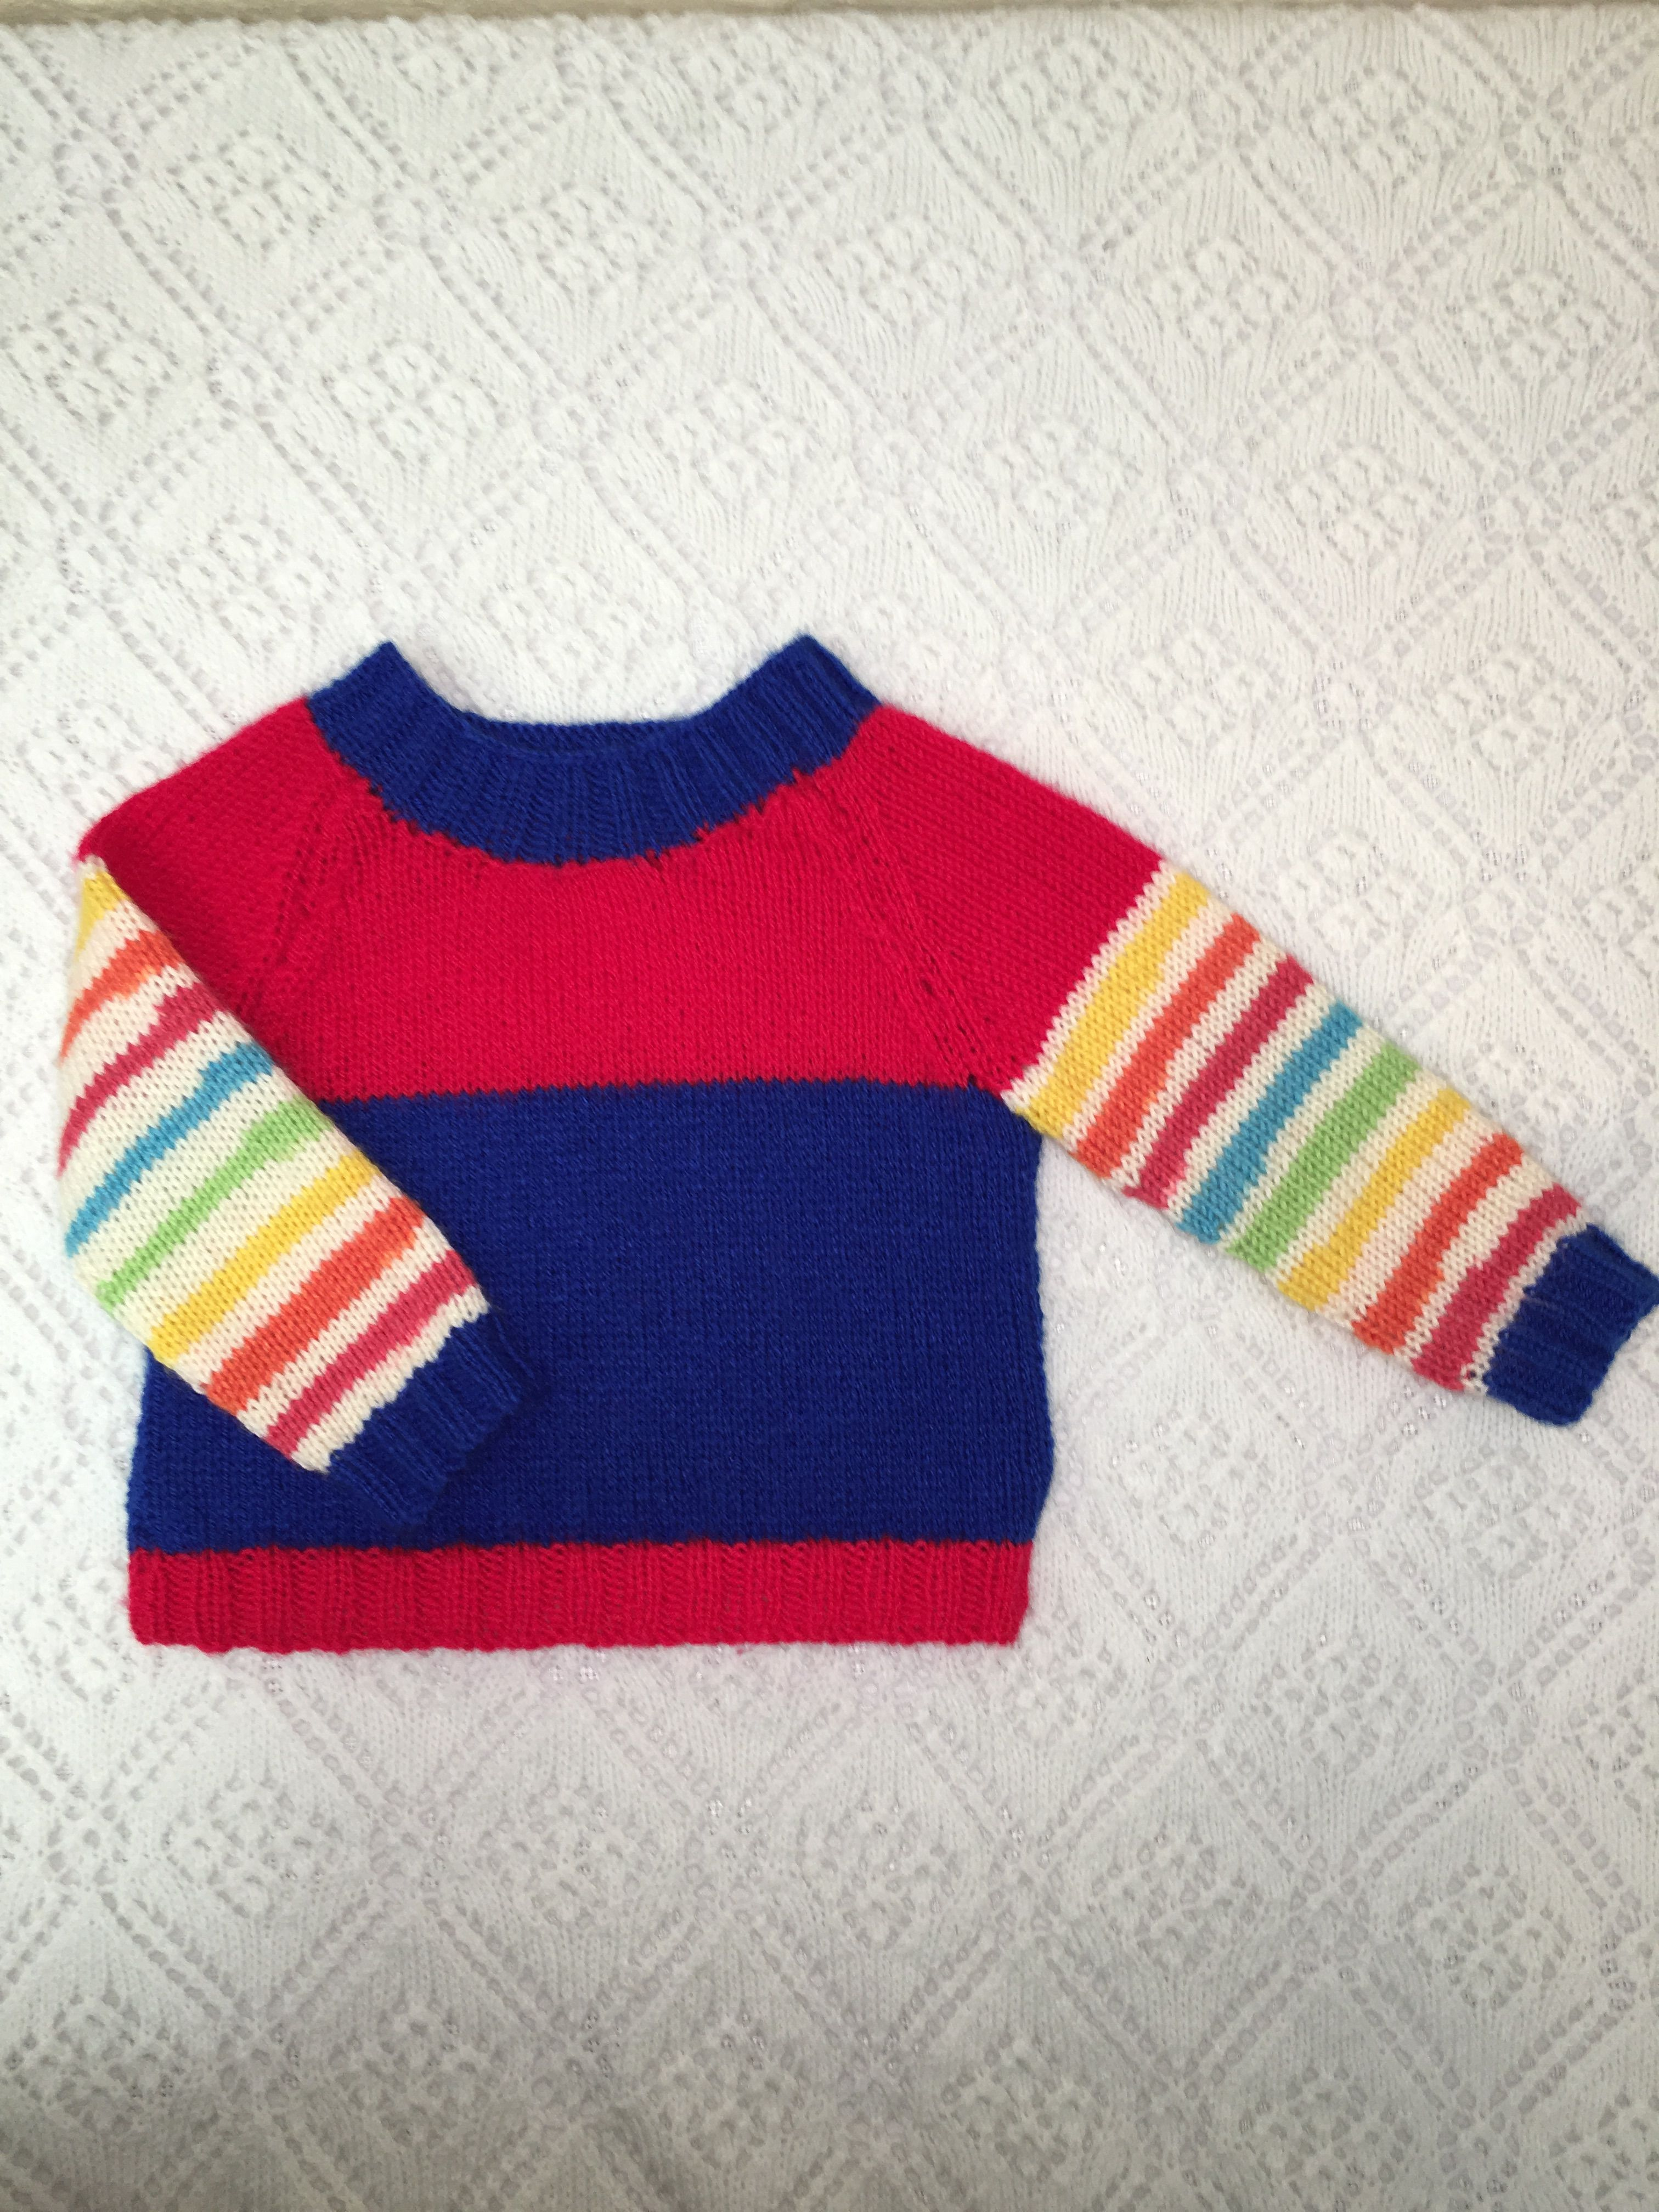 Cygnet yarns kiddies couture prints dk rainbow colour block cygnet yarns kiddies couture prints dk rainbow colour block sweater free childrens knitting pattern bankloansurffo Image collections